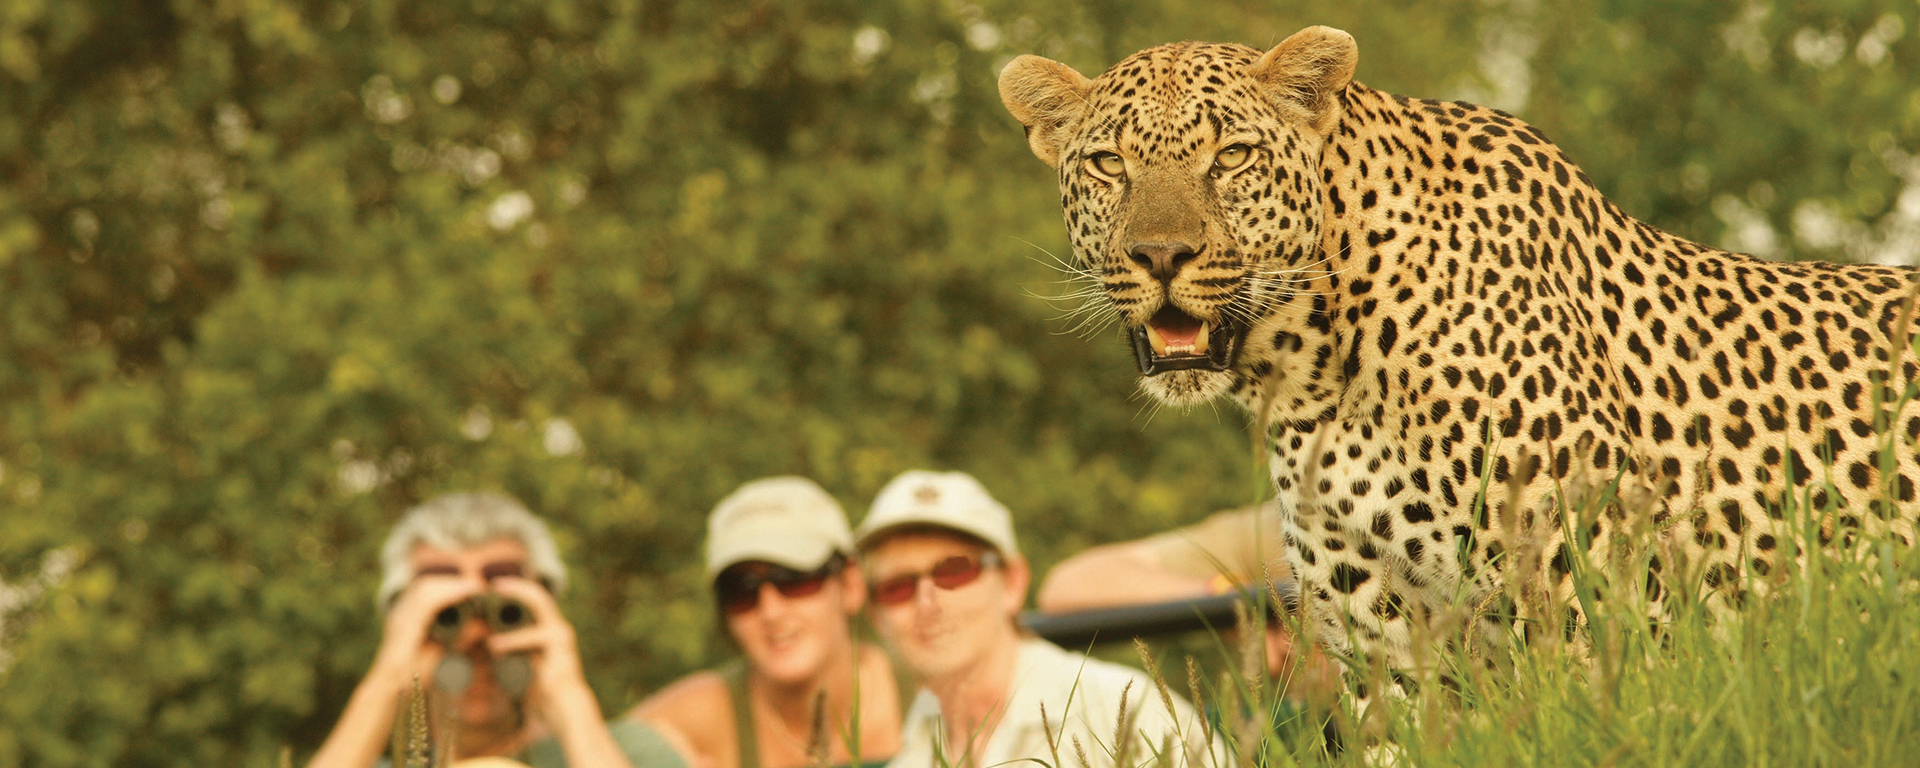 Londolozi is prime leopard territory, boasting one of the highest concentrations of these nocturnal cats on the continent.